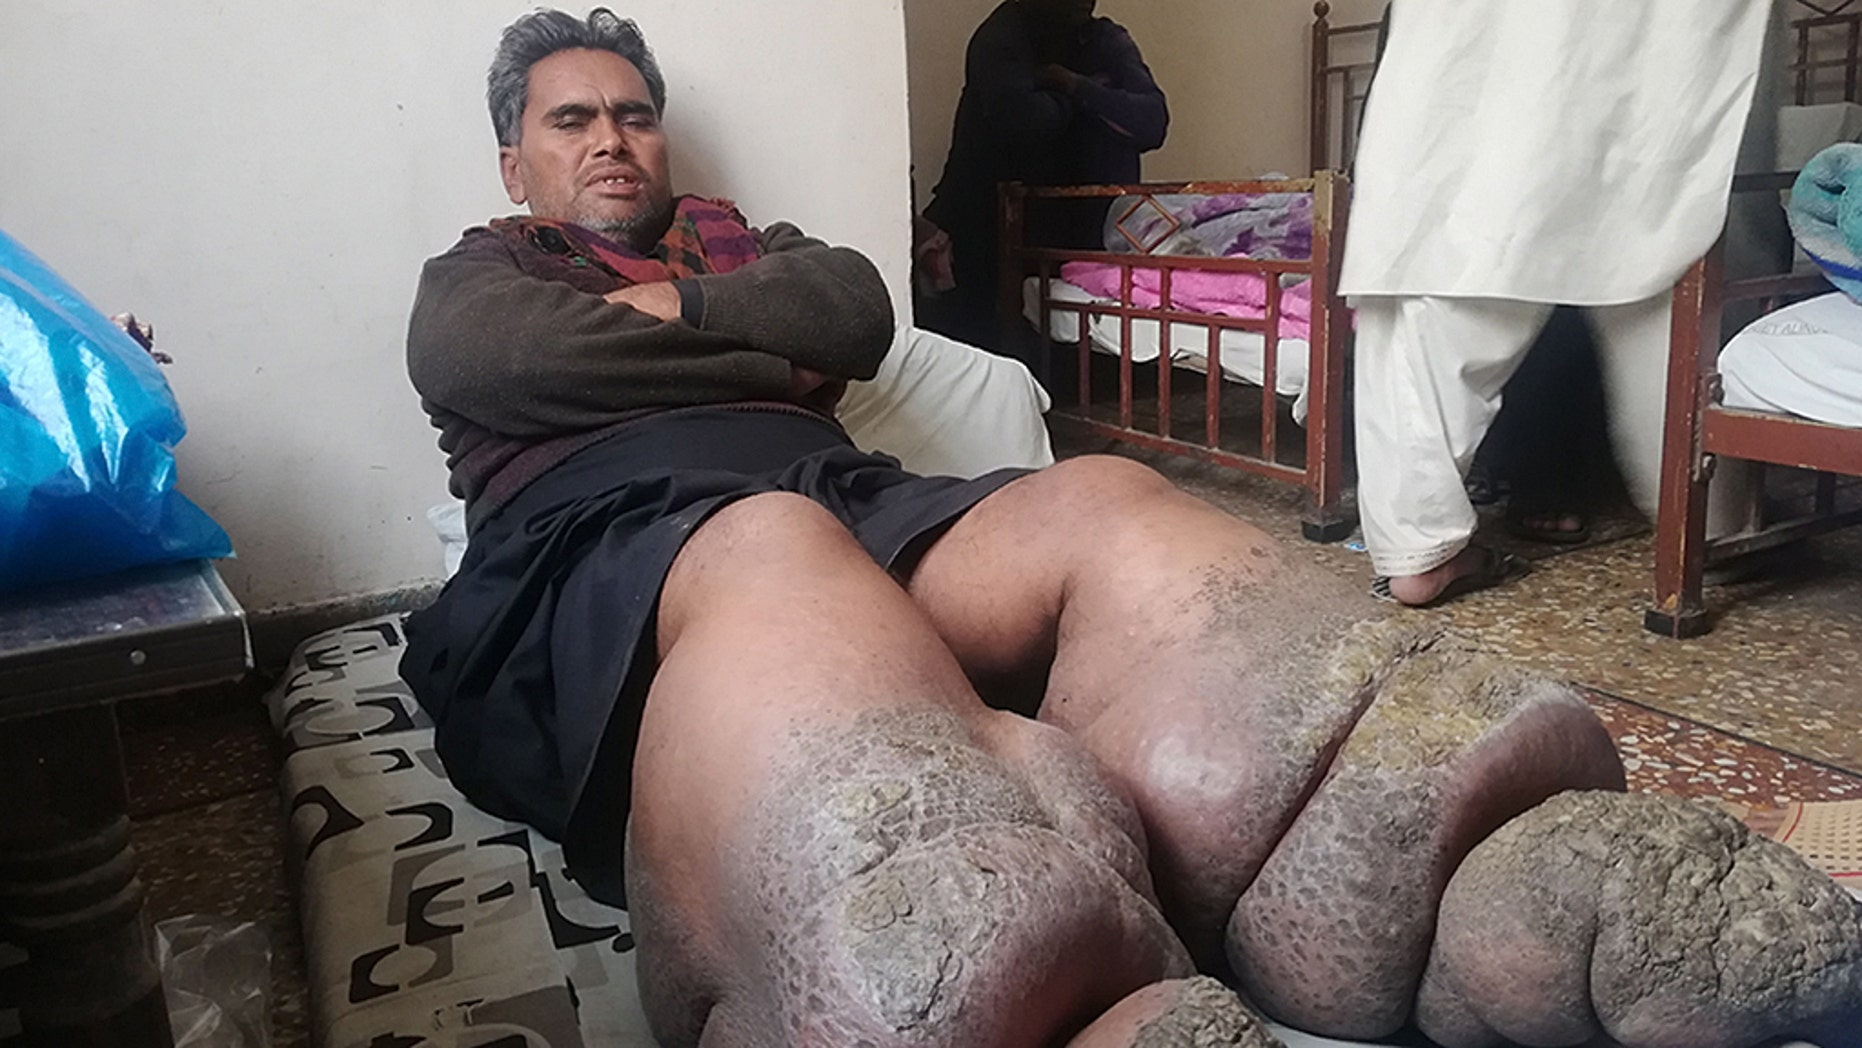 A Pakistani man is turning into stone after a rare condition has caused his legs to swell up more than twice the normal size.